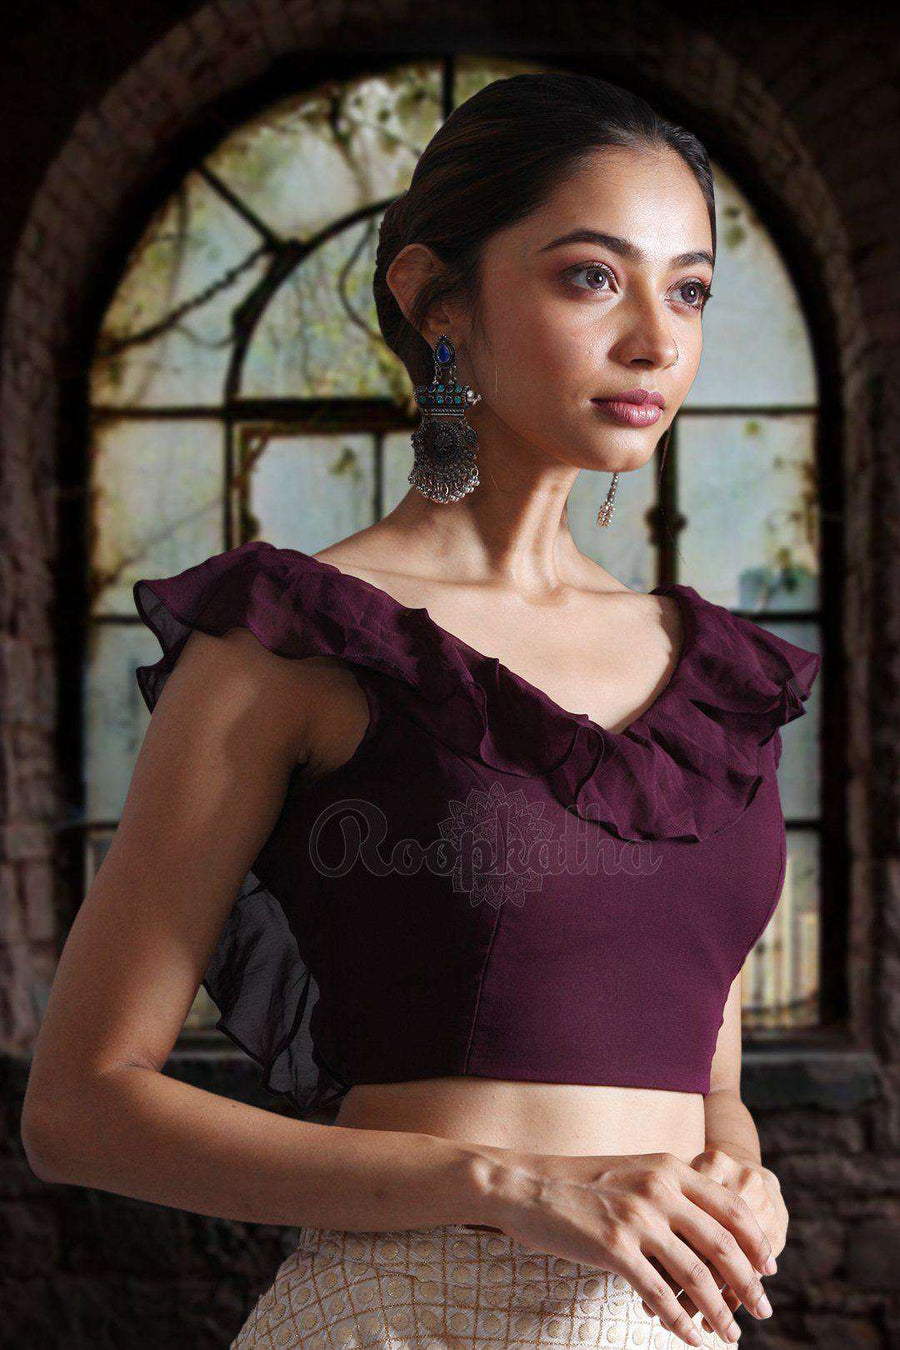 Backless Georgette Blouse Blouse Roopkatha - A Story of Art